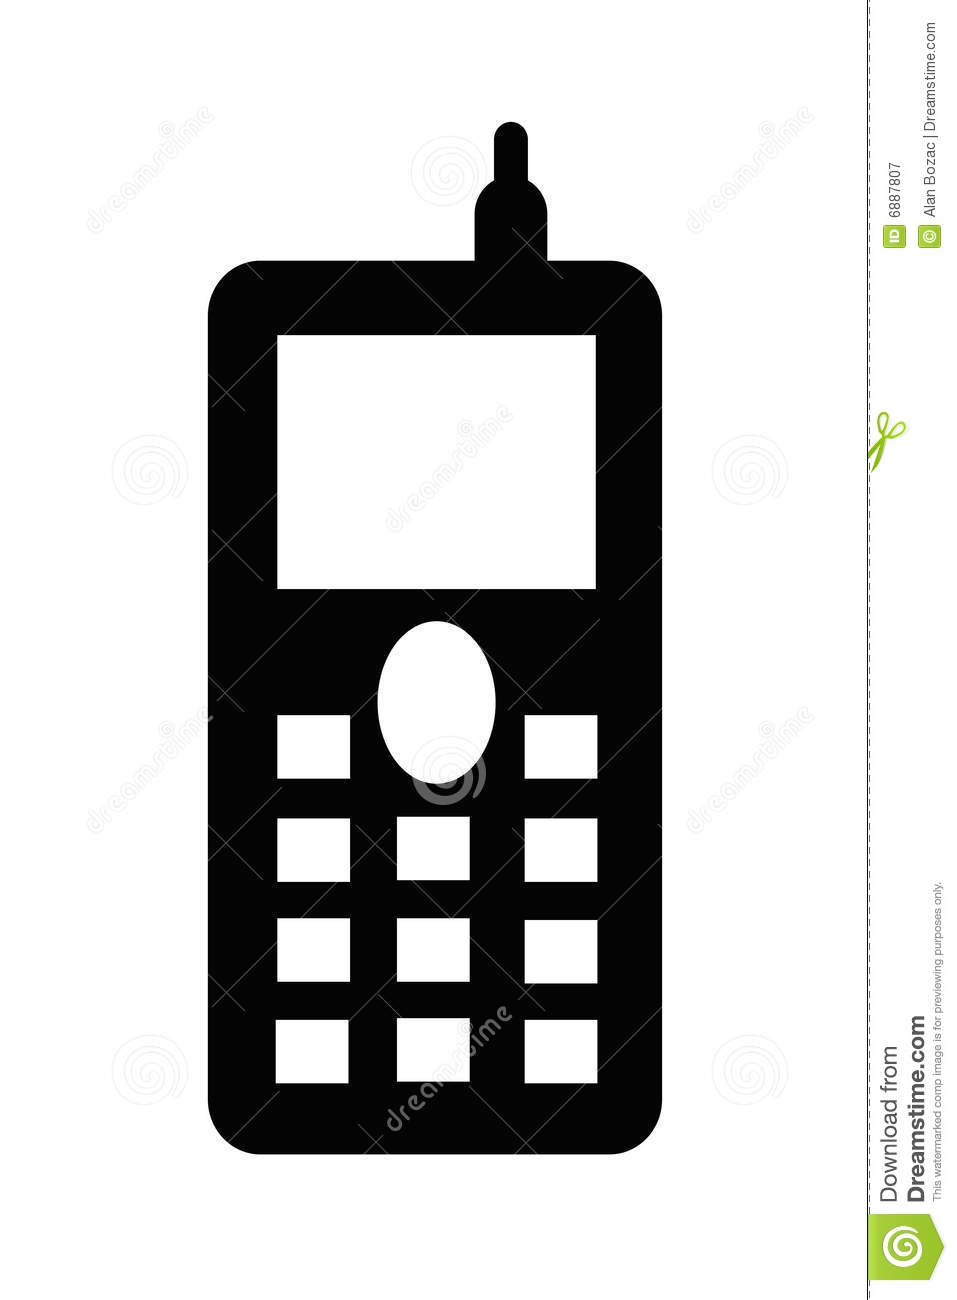 how to call us from germany on cell phone